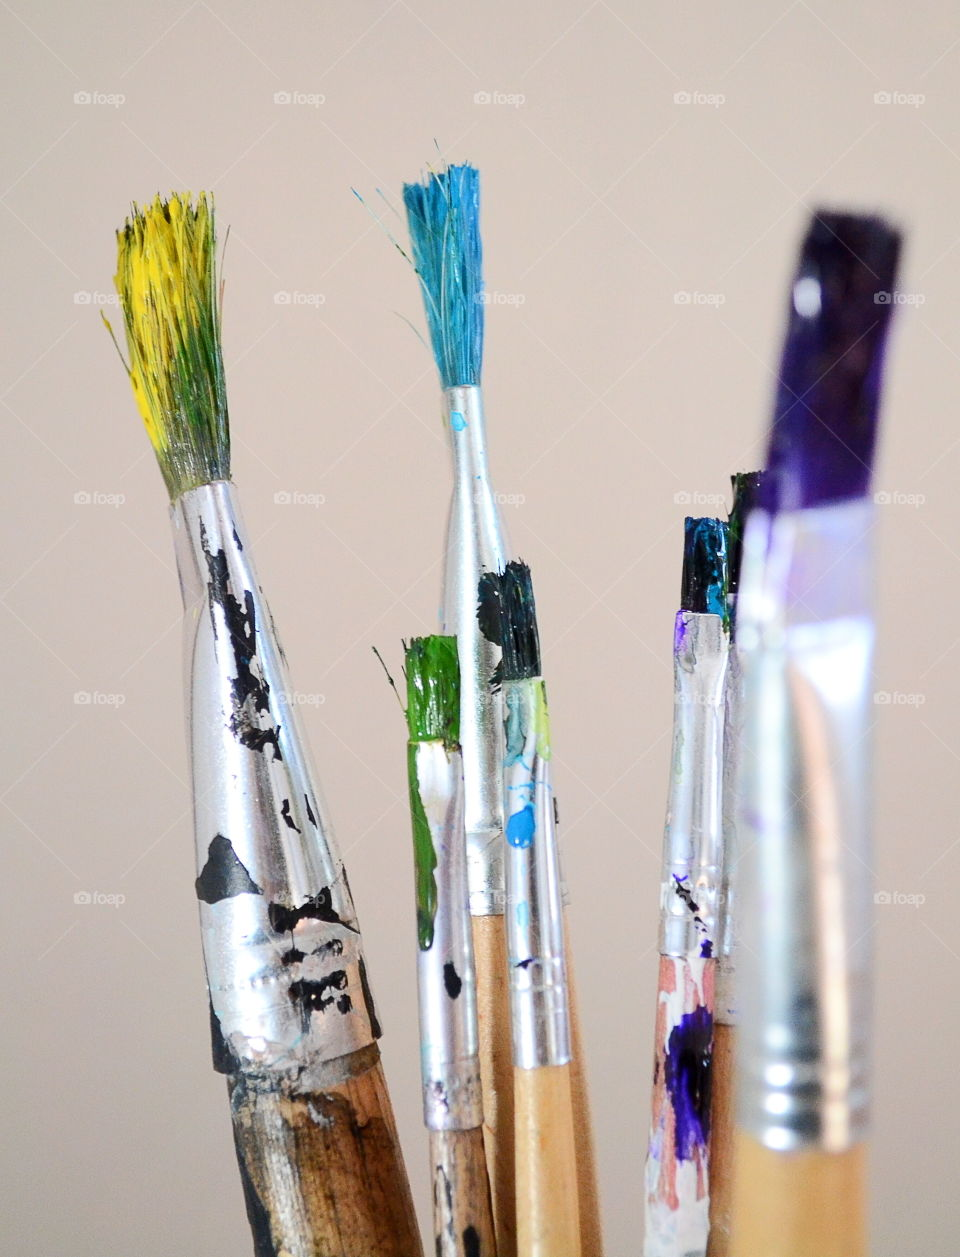 Paintbrushes against grey backgrounds